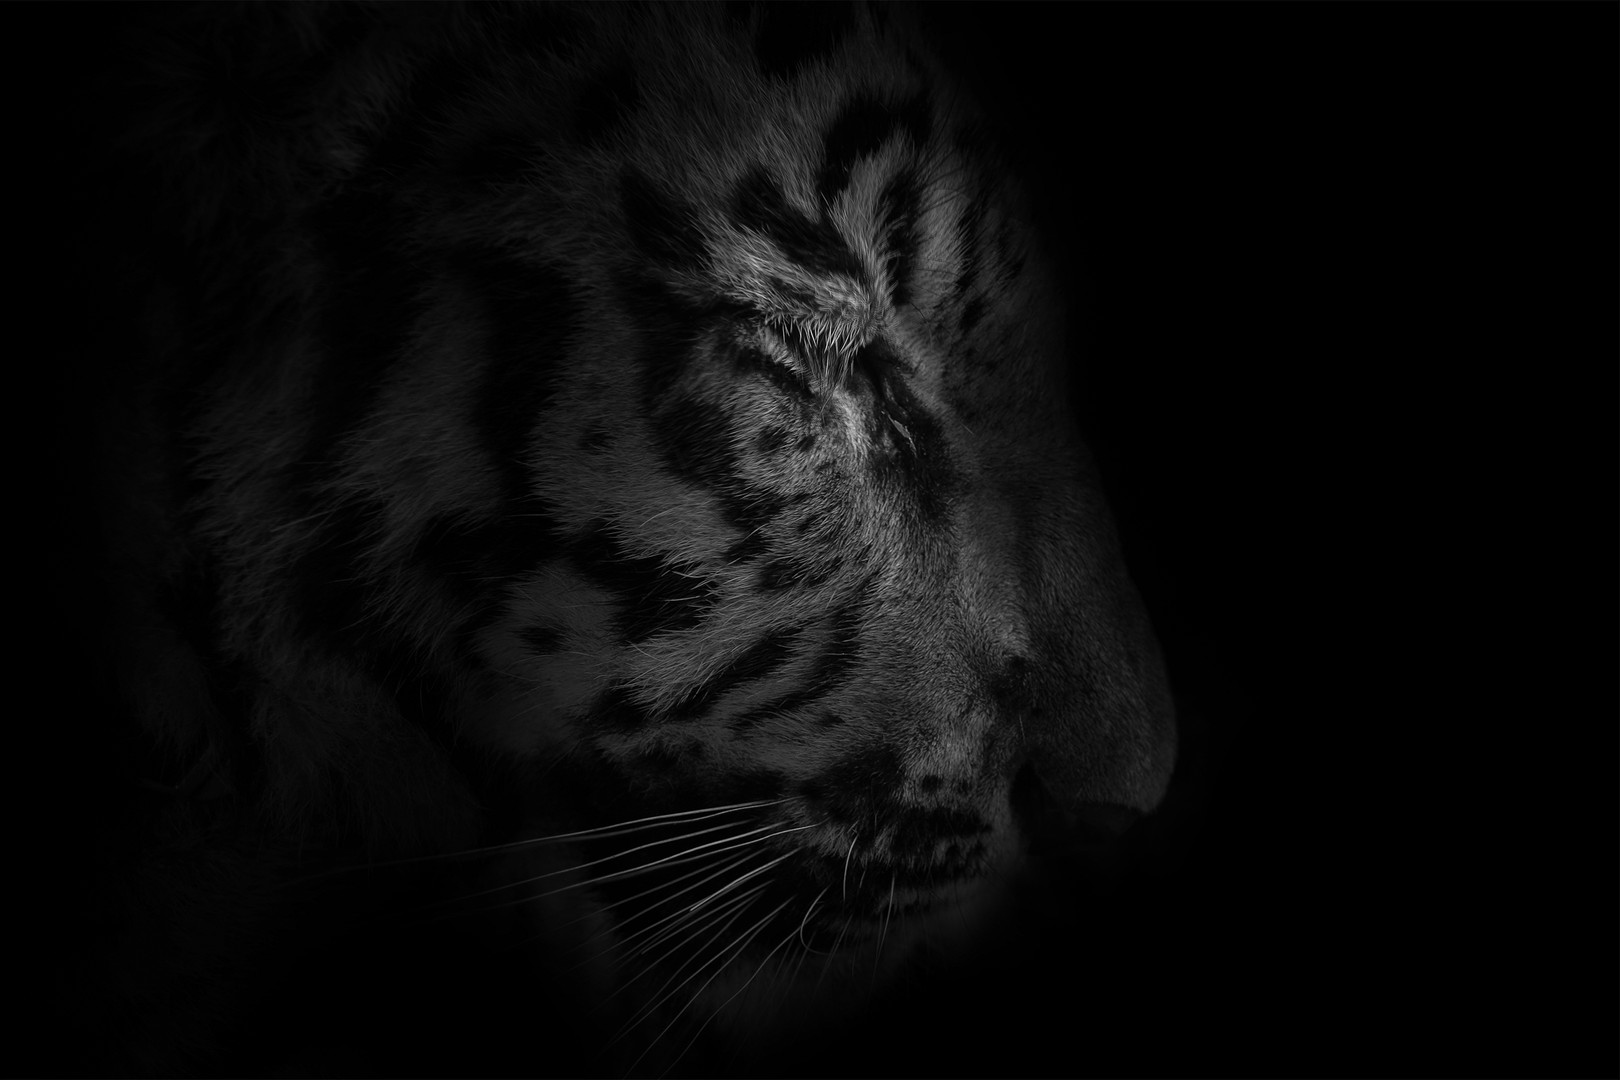 Tiger portrait, n°2